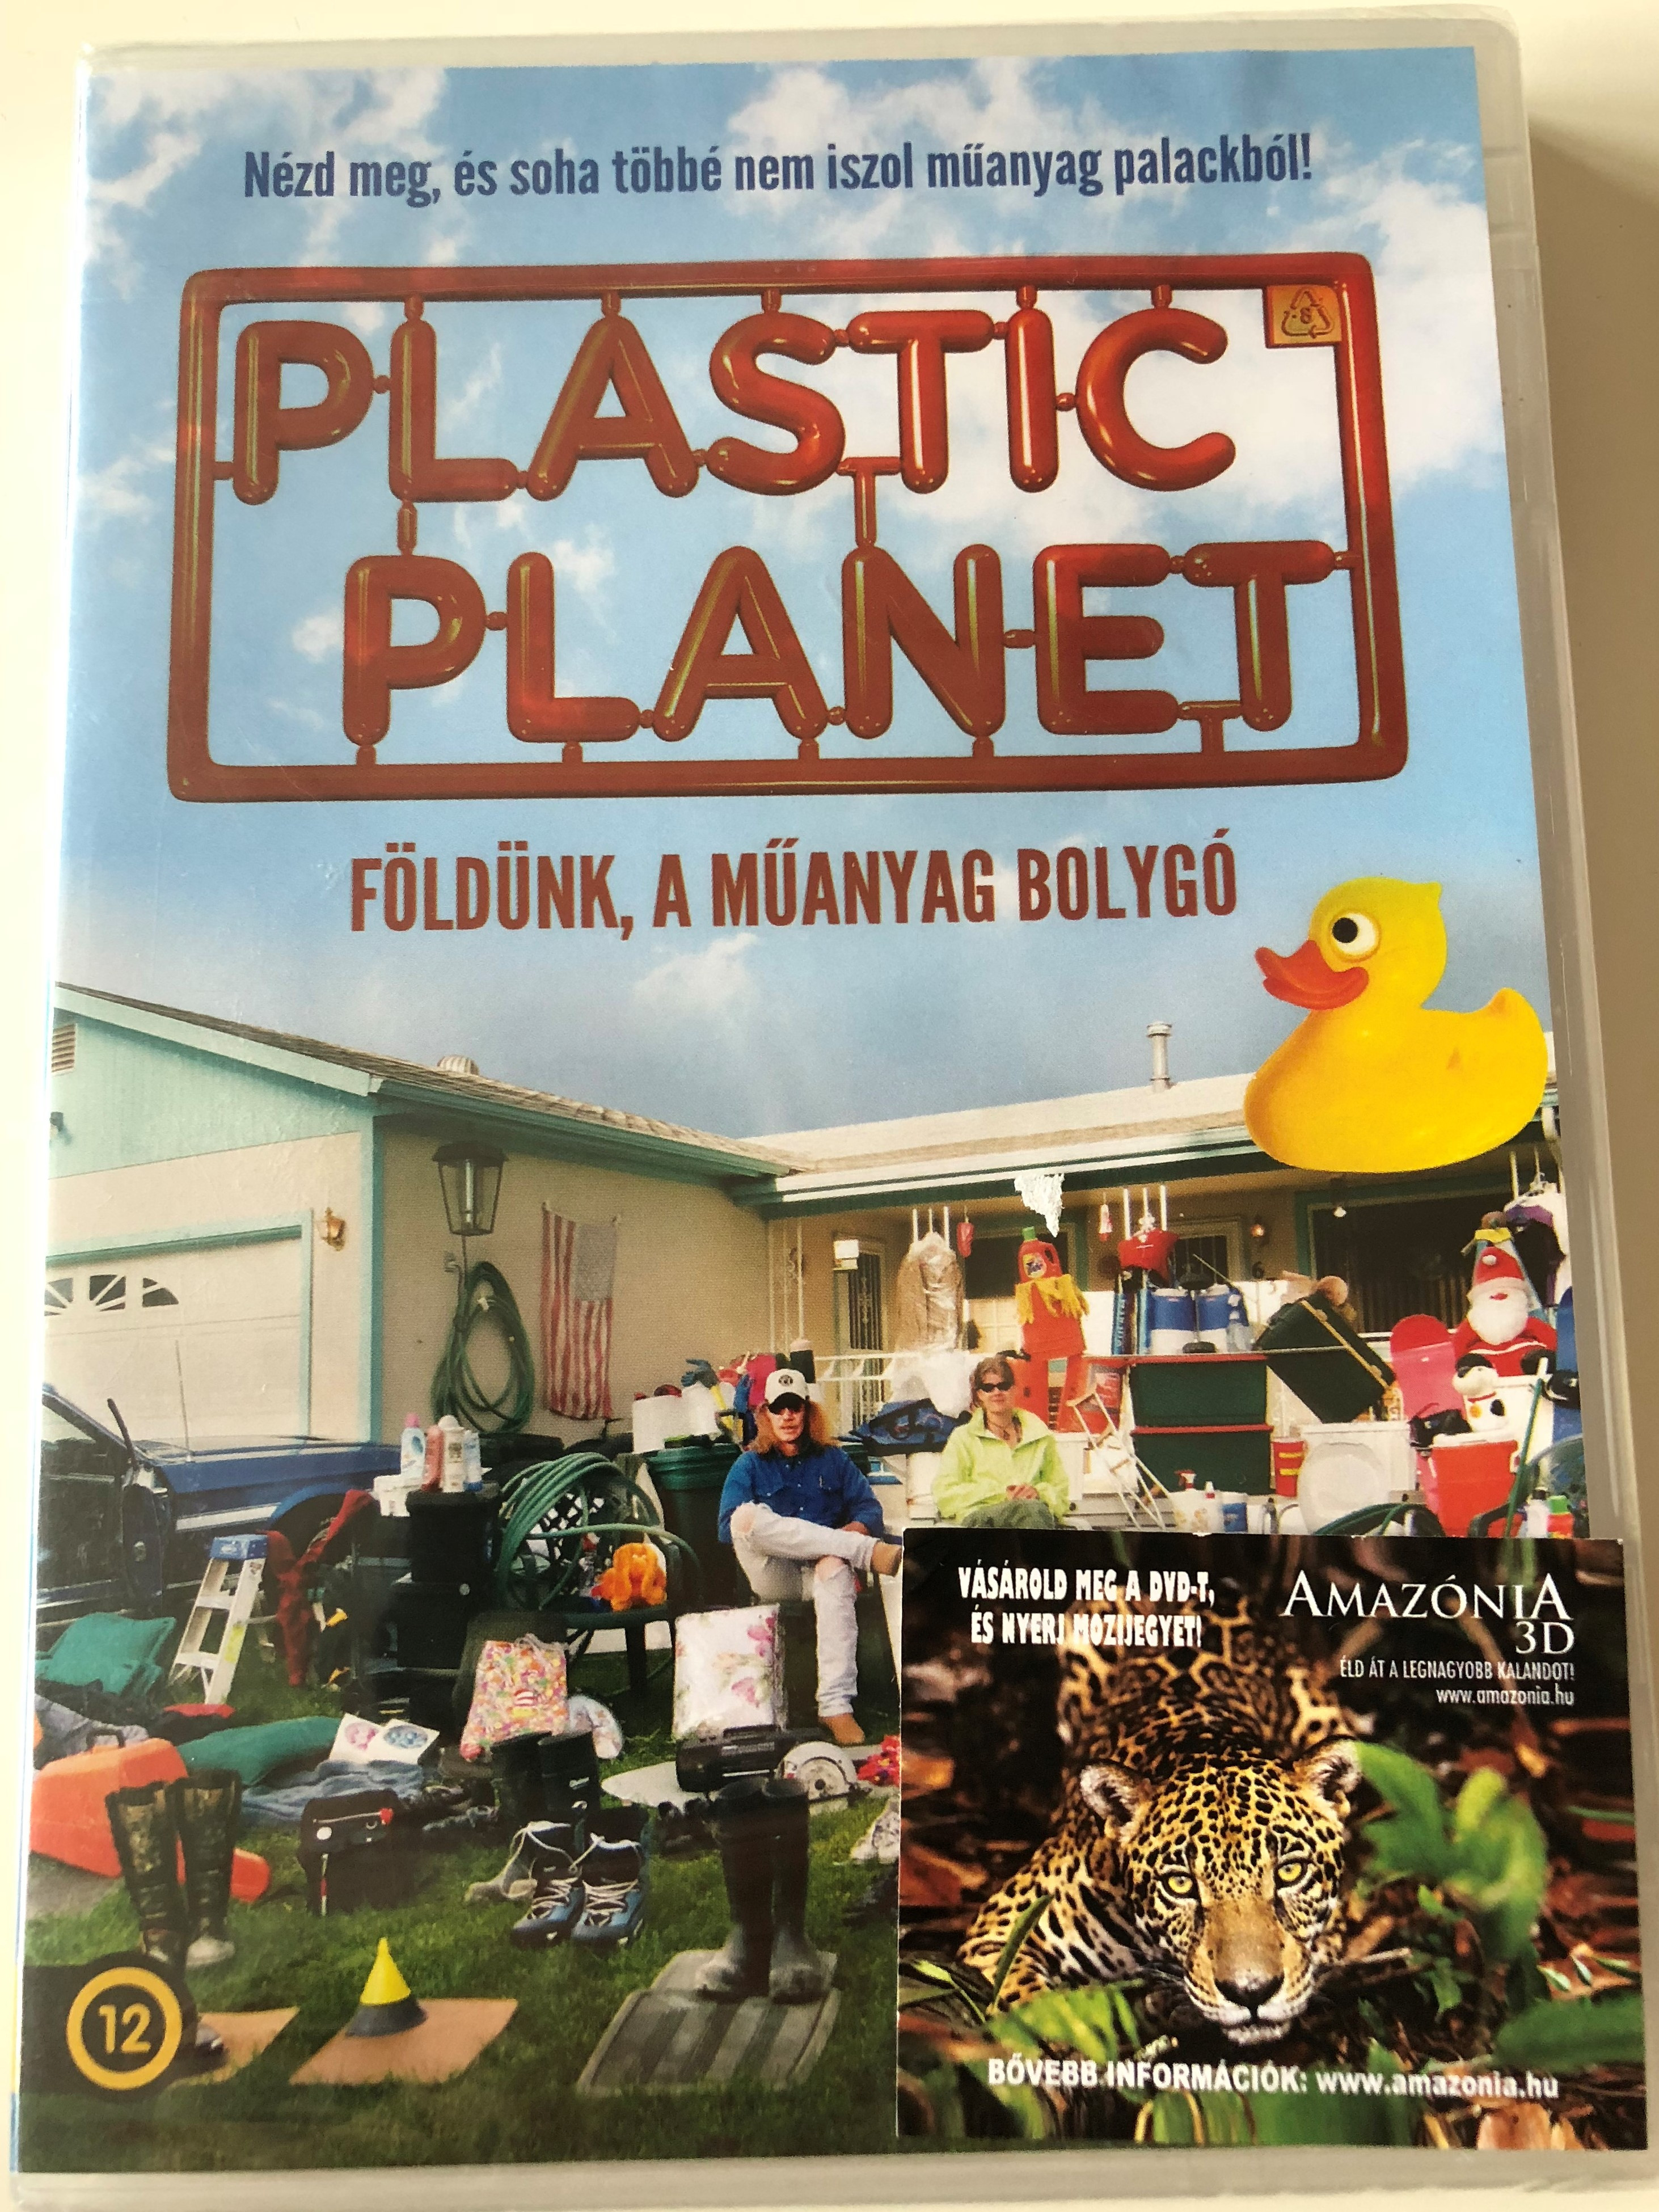 plastic-planet-dvd-2014-f-ld-nk-a-m-anyag-bolyg-directed-by-werner-boote-documentary-about-the-dangers-of-plastic-1-.jpg